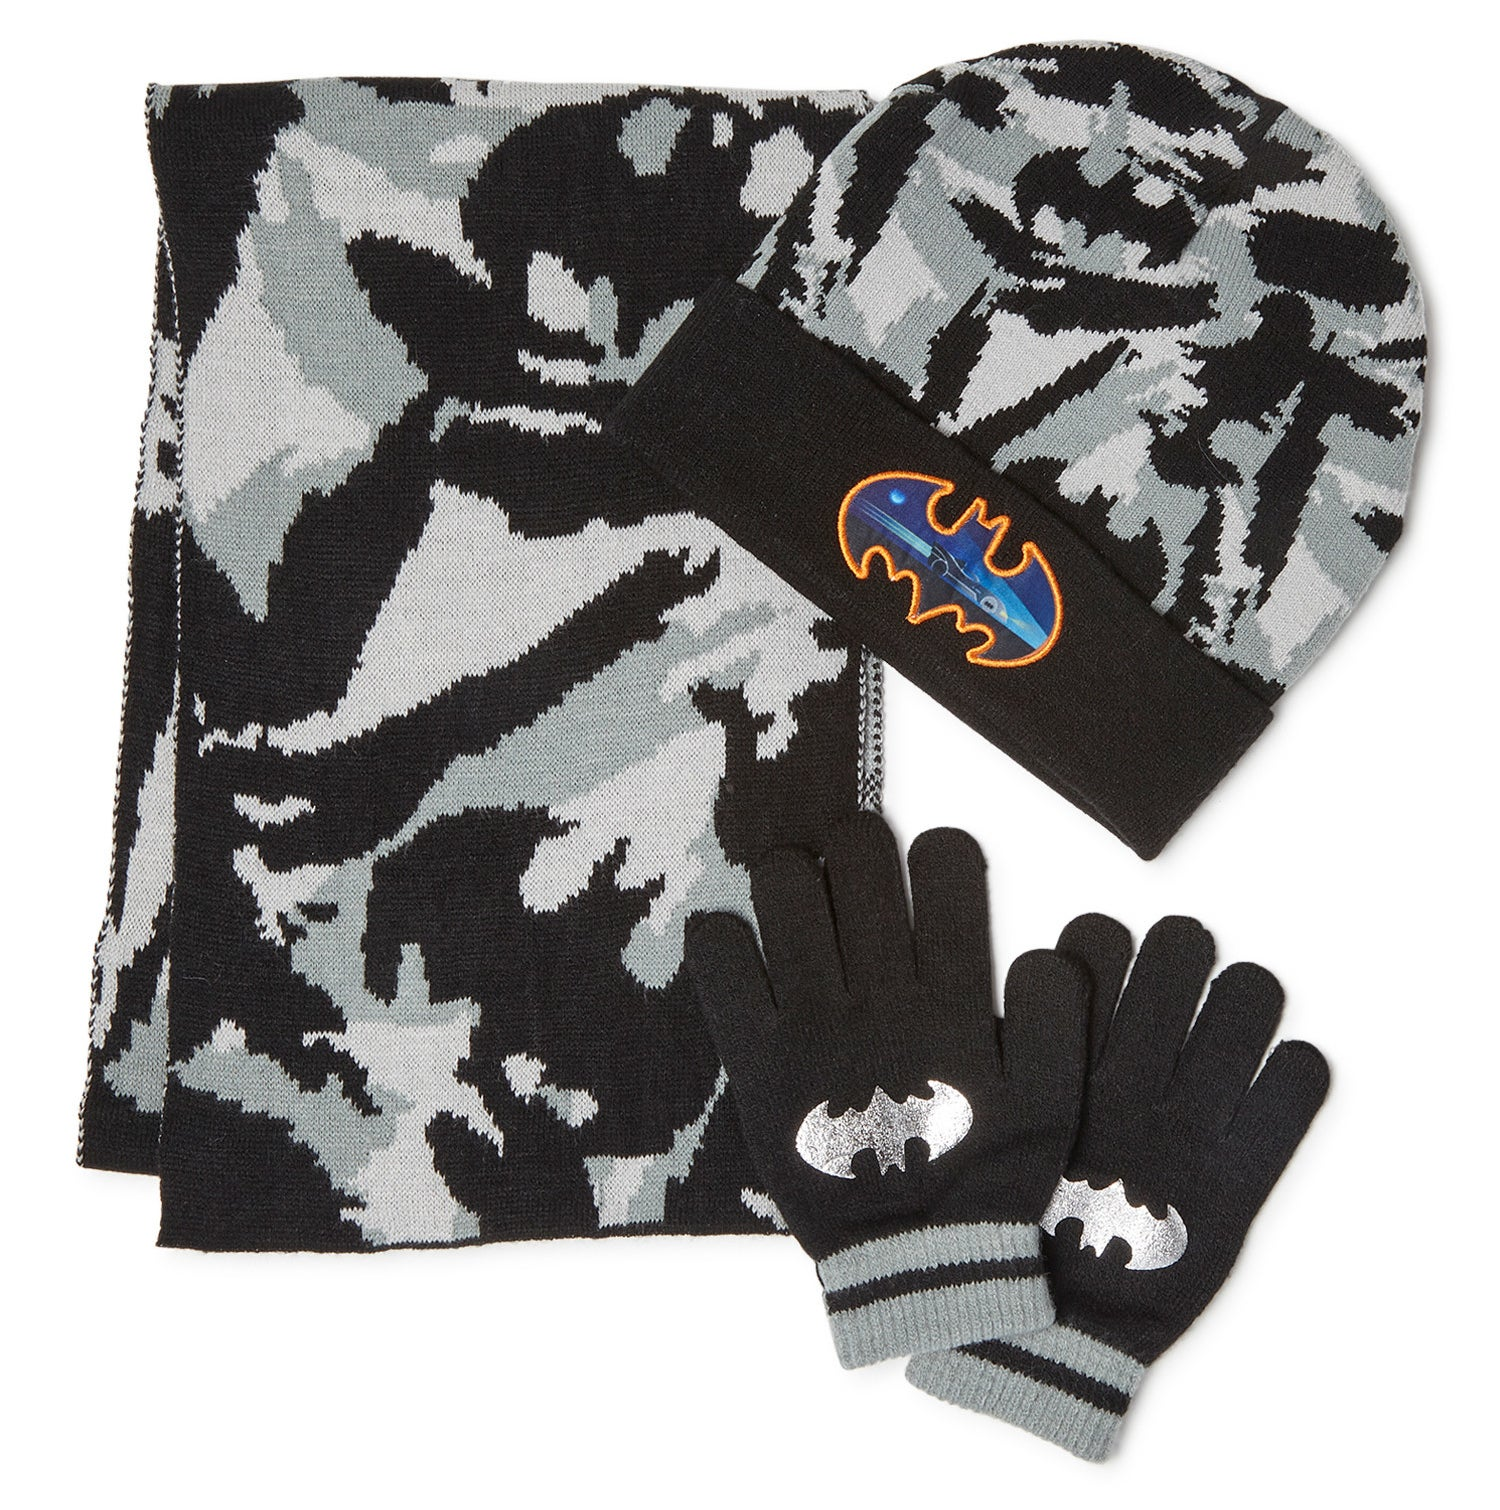 Black and gray camouflage winter accessories set